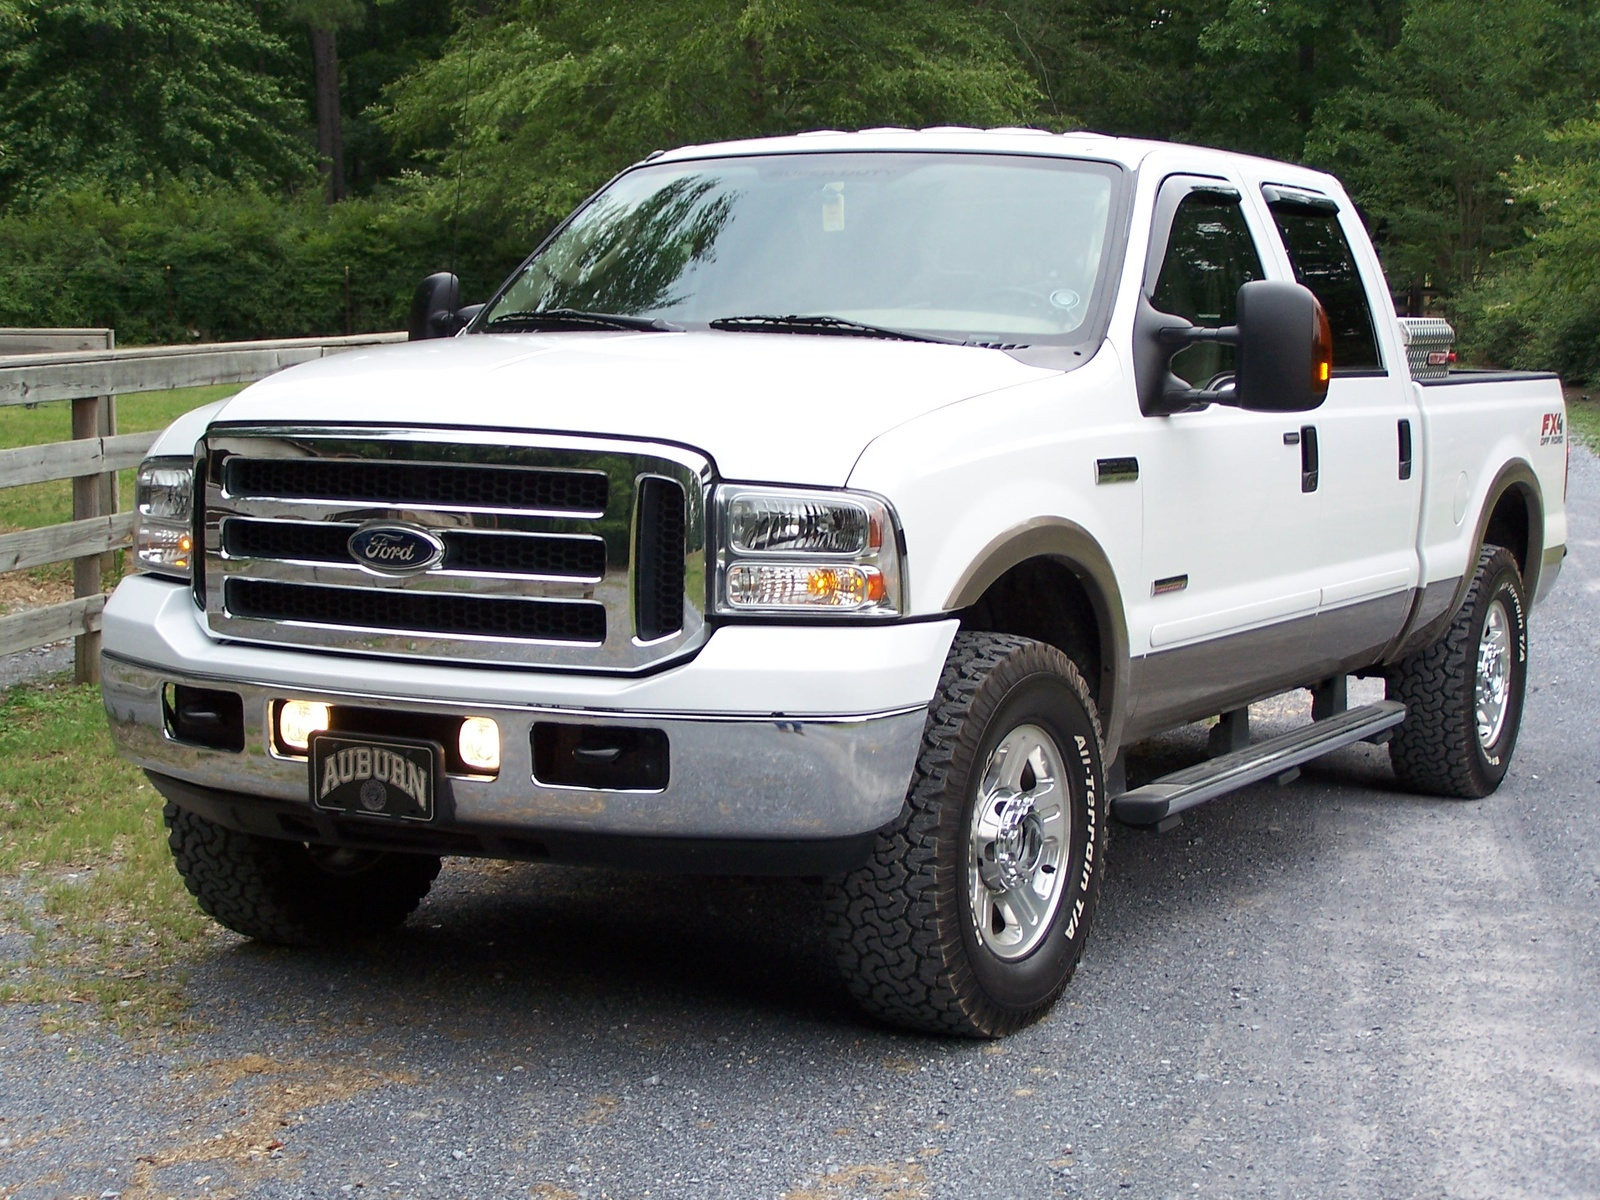 2006 Ford F-250 Super Duty Lariat SuperCab 4WD SB, 2006 Ford F-250 Super Duty Lariat 4dr SuperCab 4WD SB picture